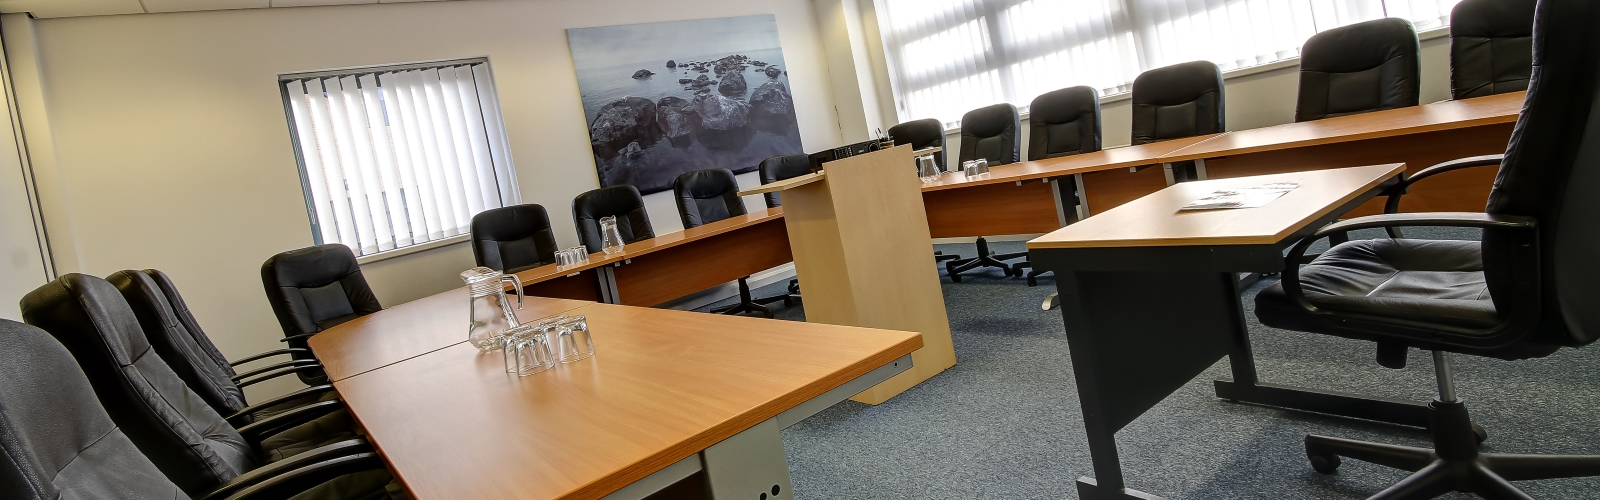 Conference Room - Durham Suite - room for hire in Durham